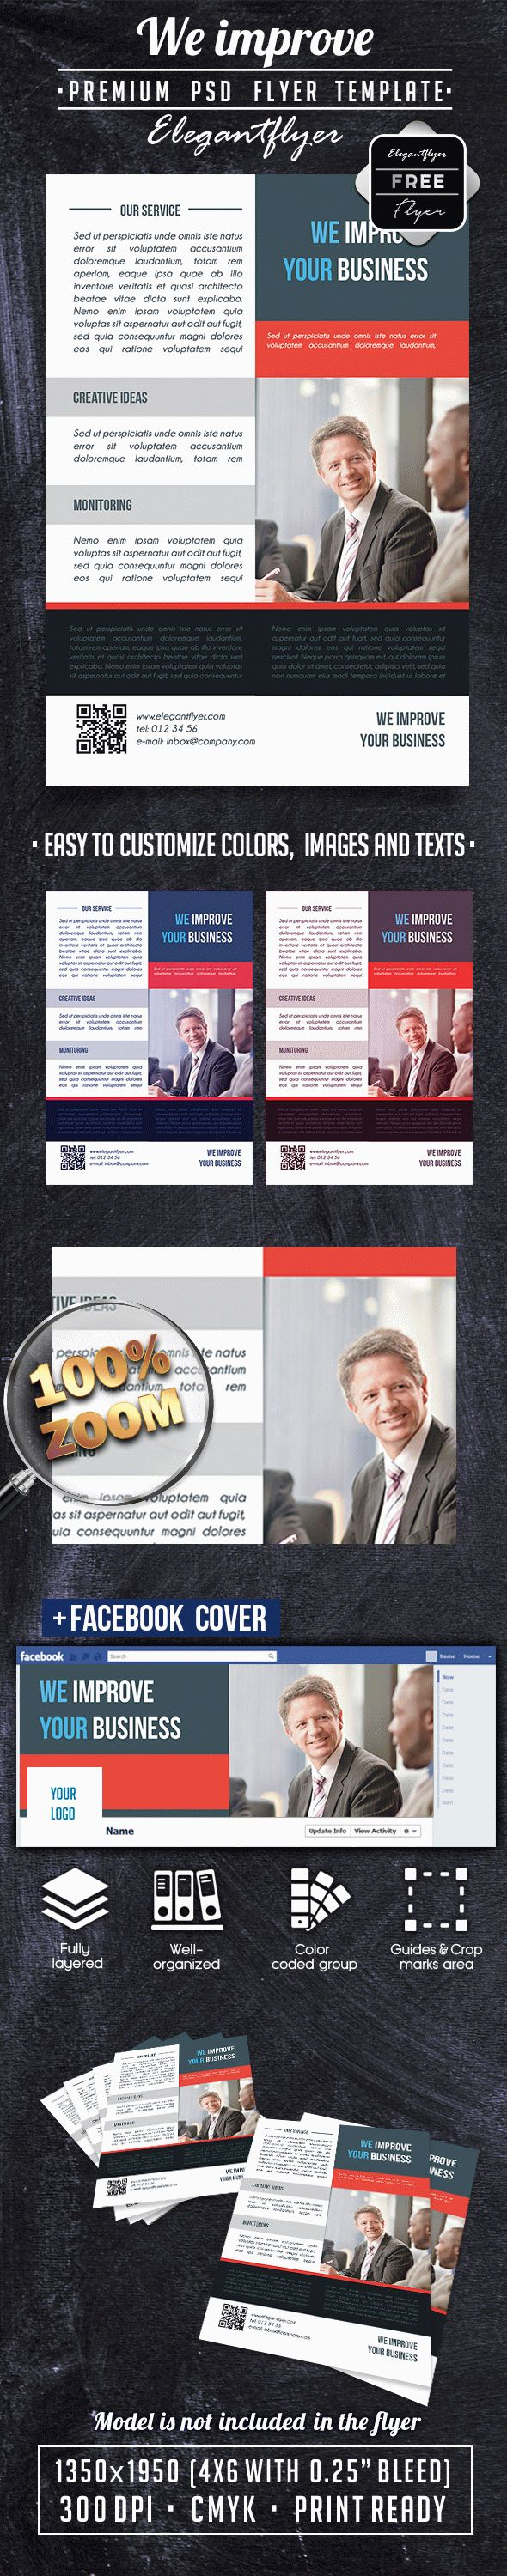 We Improve free Business Flyer PSD Template + Facebook Cover